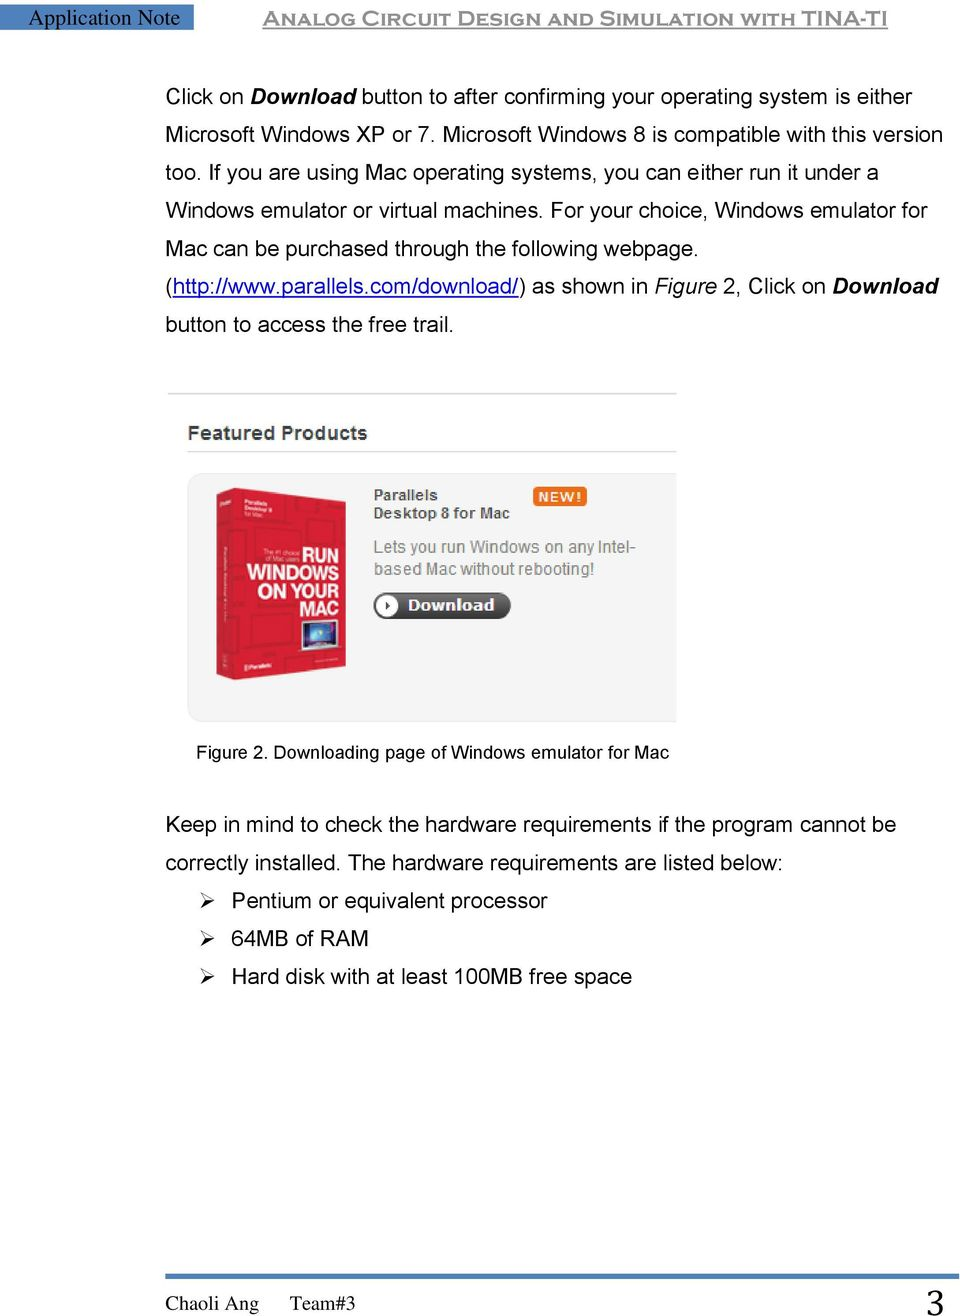 For your choice, Windows emulator for Mac can be purchased through the following webpage. (http://www.parallels.